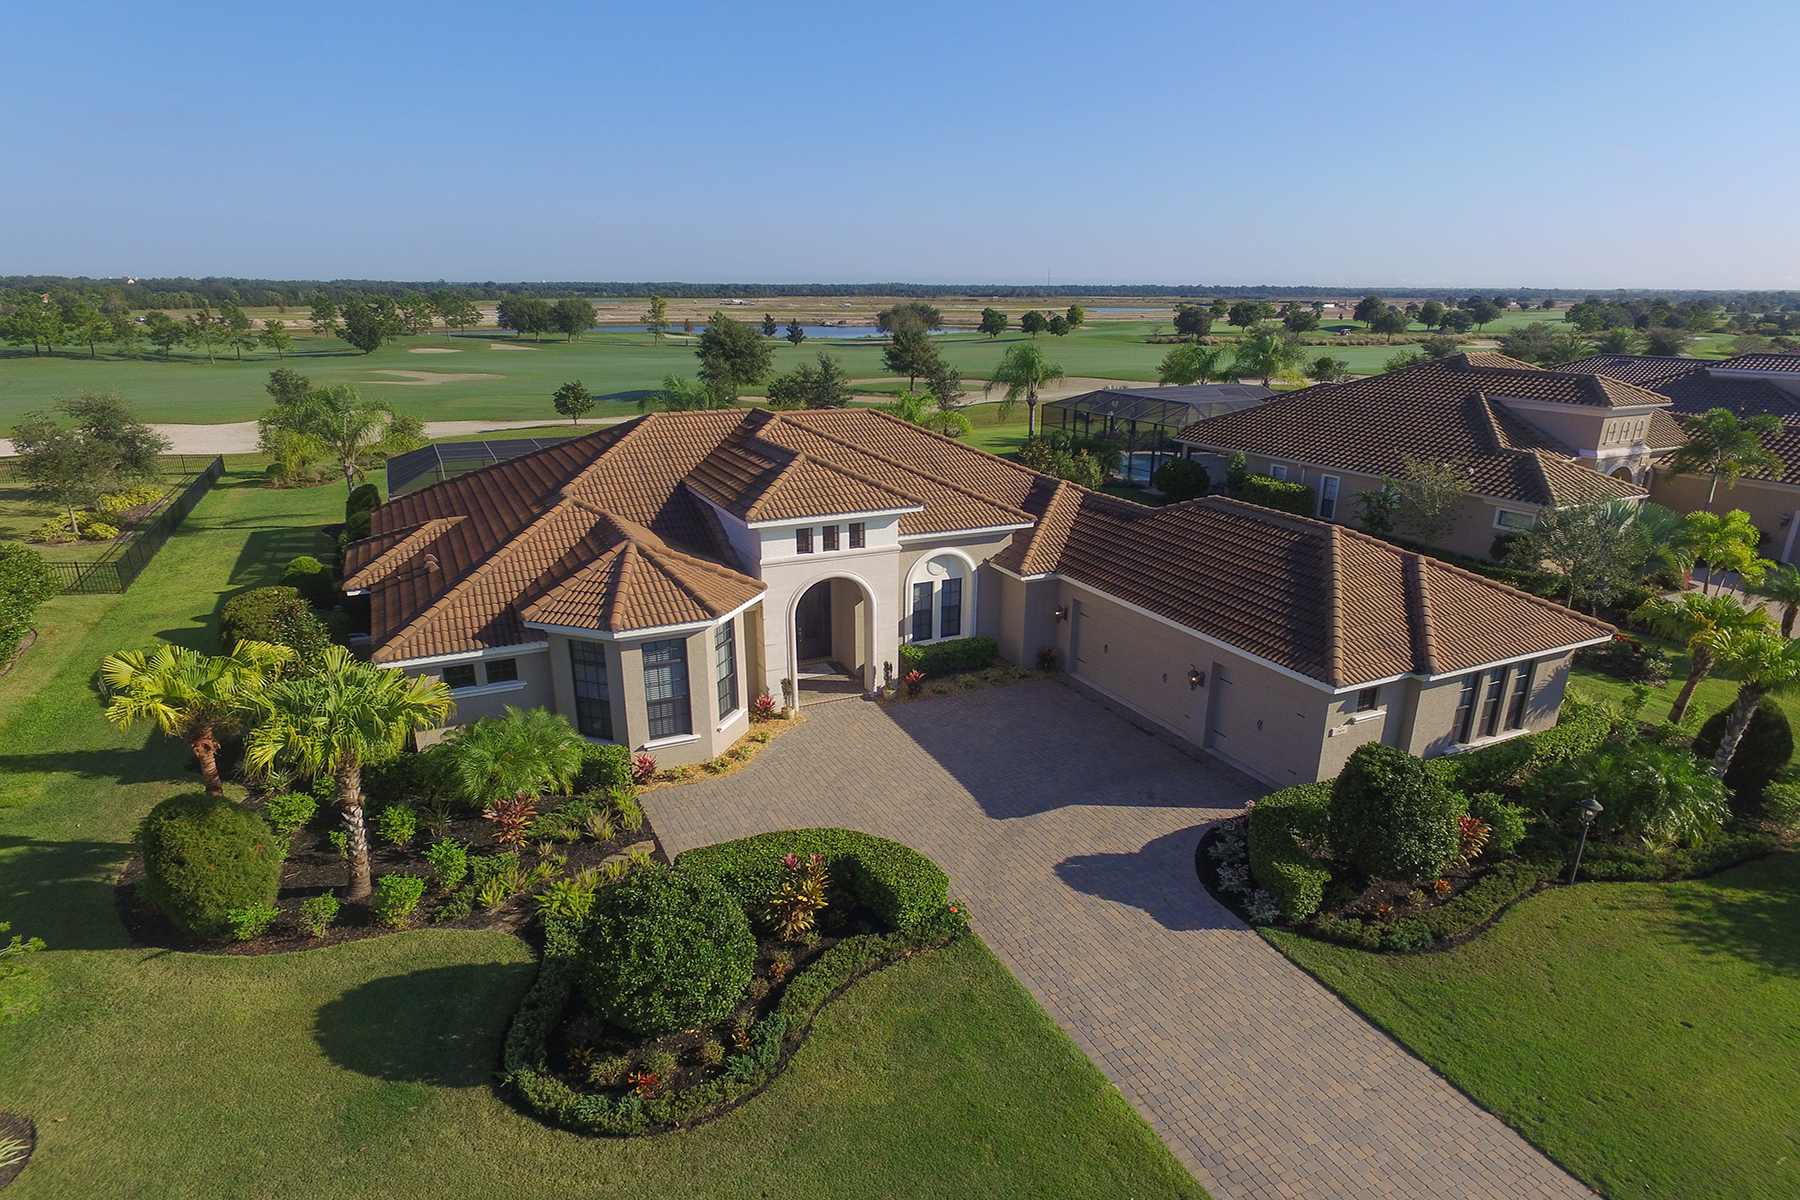 Single Family Home for Sale at LAKEWOOD RANCH COUNTRY CLUB EAST 15109 Camargo Pl Lakewood Ranch, Florida, 34202 United States